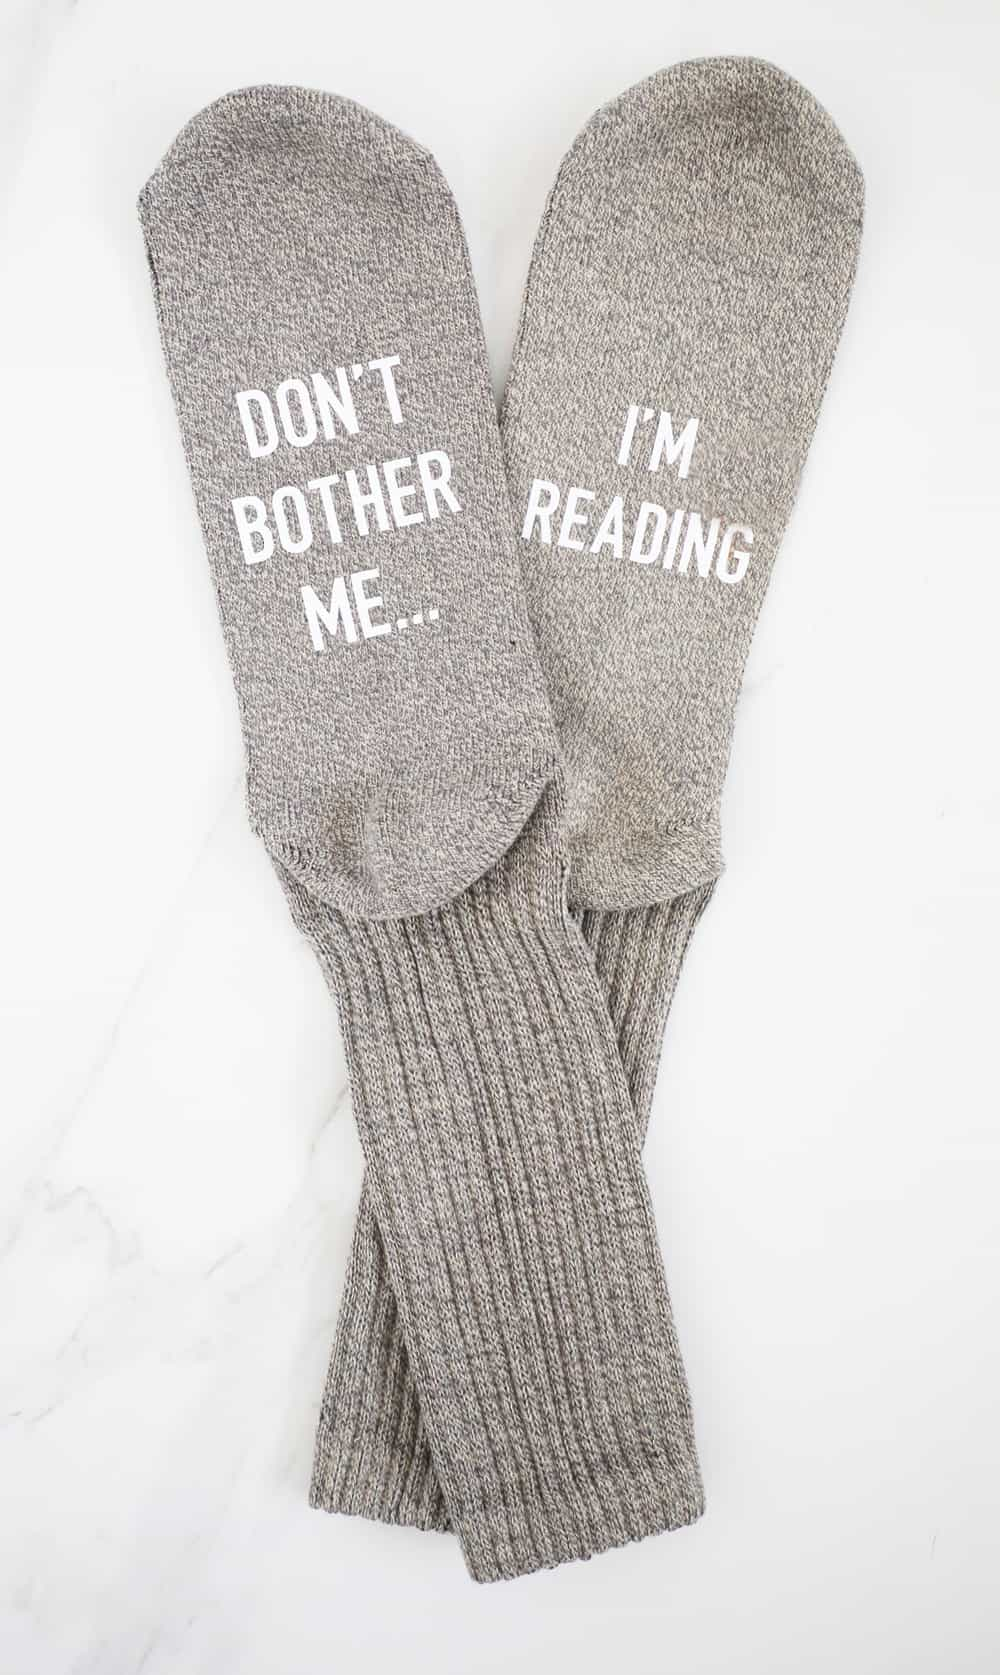 greige socks that say don't bother me i'm reading on a white background